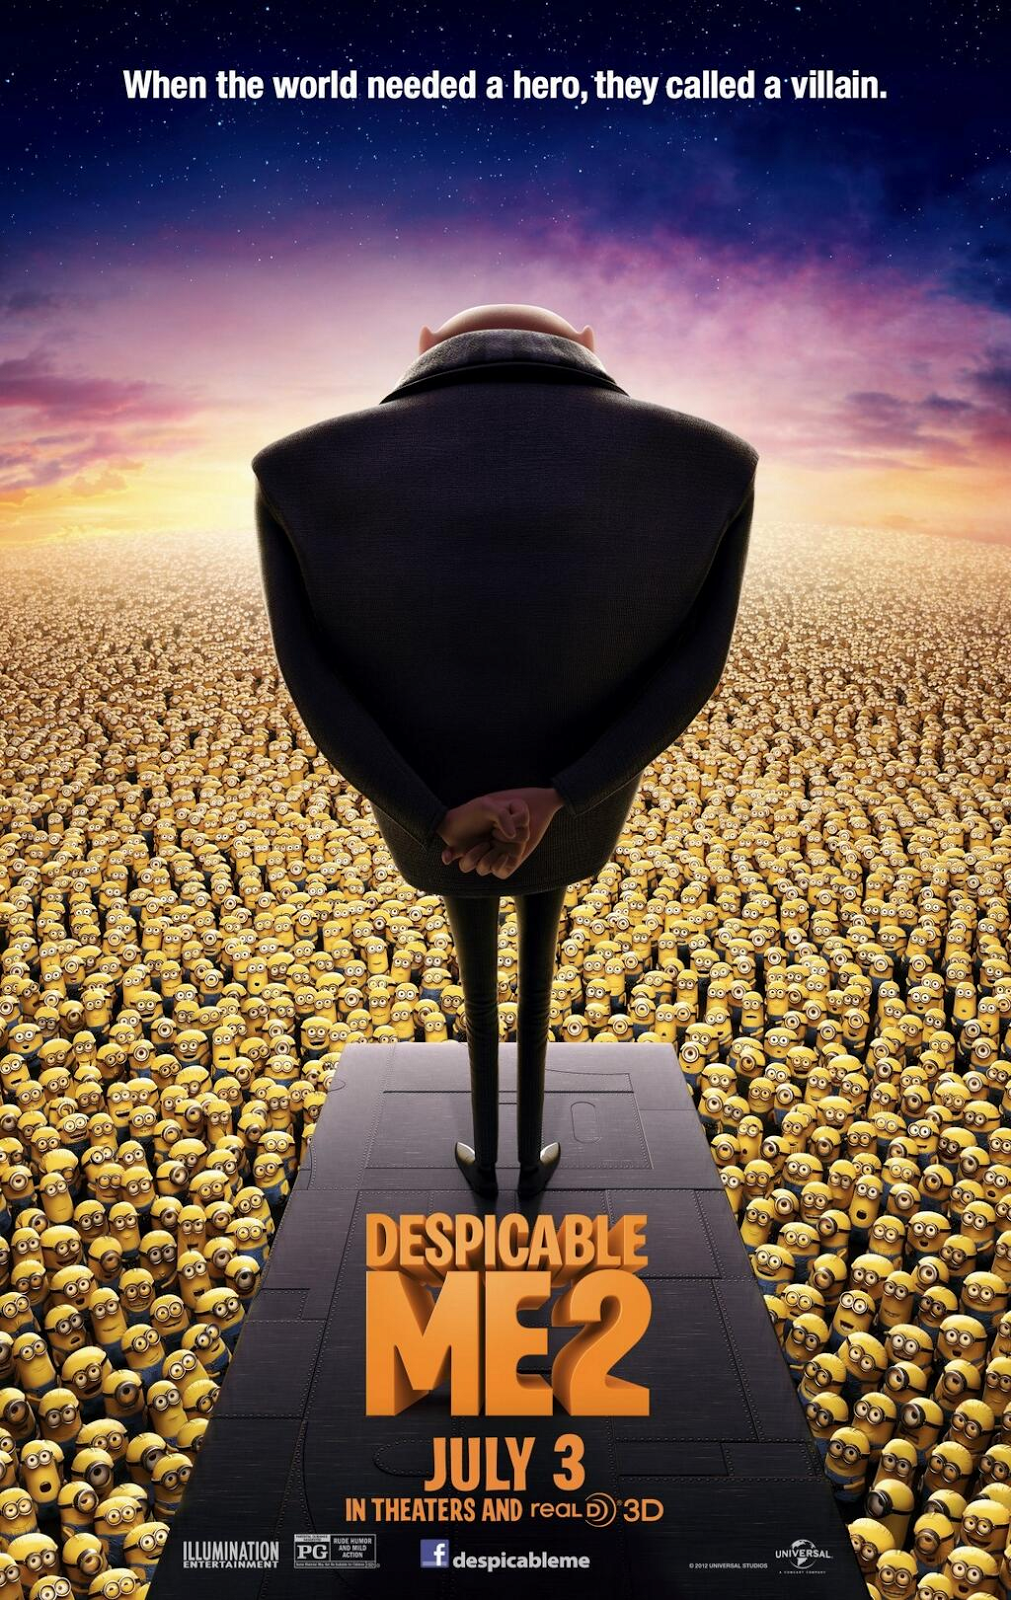 A113Animation: New Despicable Me 2 Poster Shows a Sea of Minions Despicable Me 2 Minions Poster